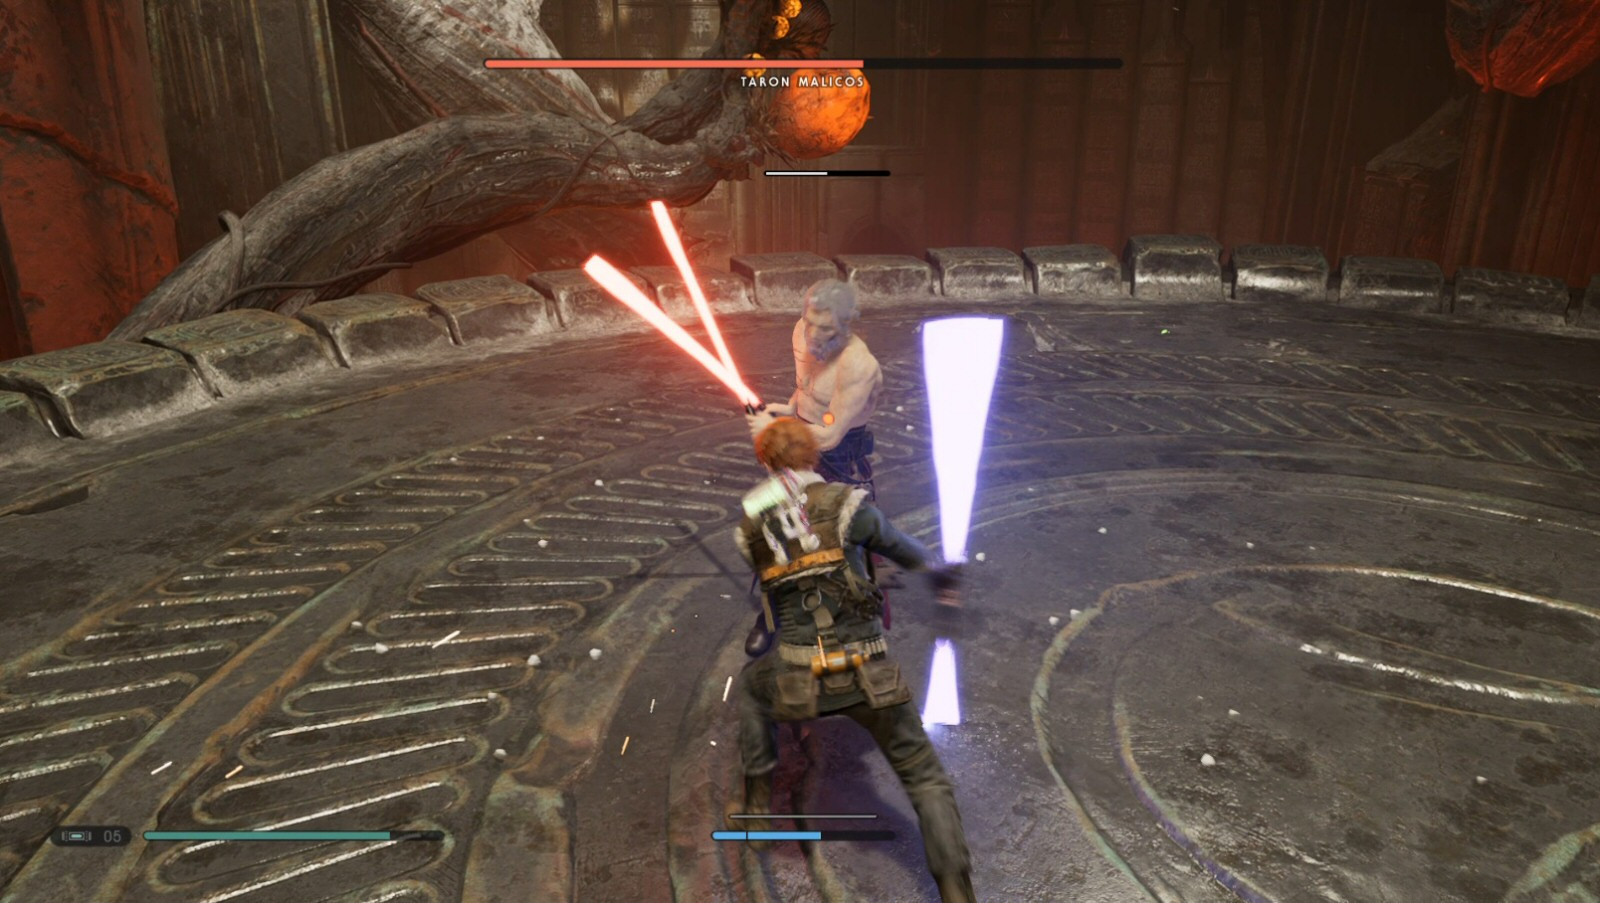 Twin sabers vs. dual sabers. Everyone needs a gimmick these days. Dear writers: Lightsabers are ALREADY cool. You don't always need gimmicks.